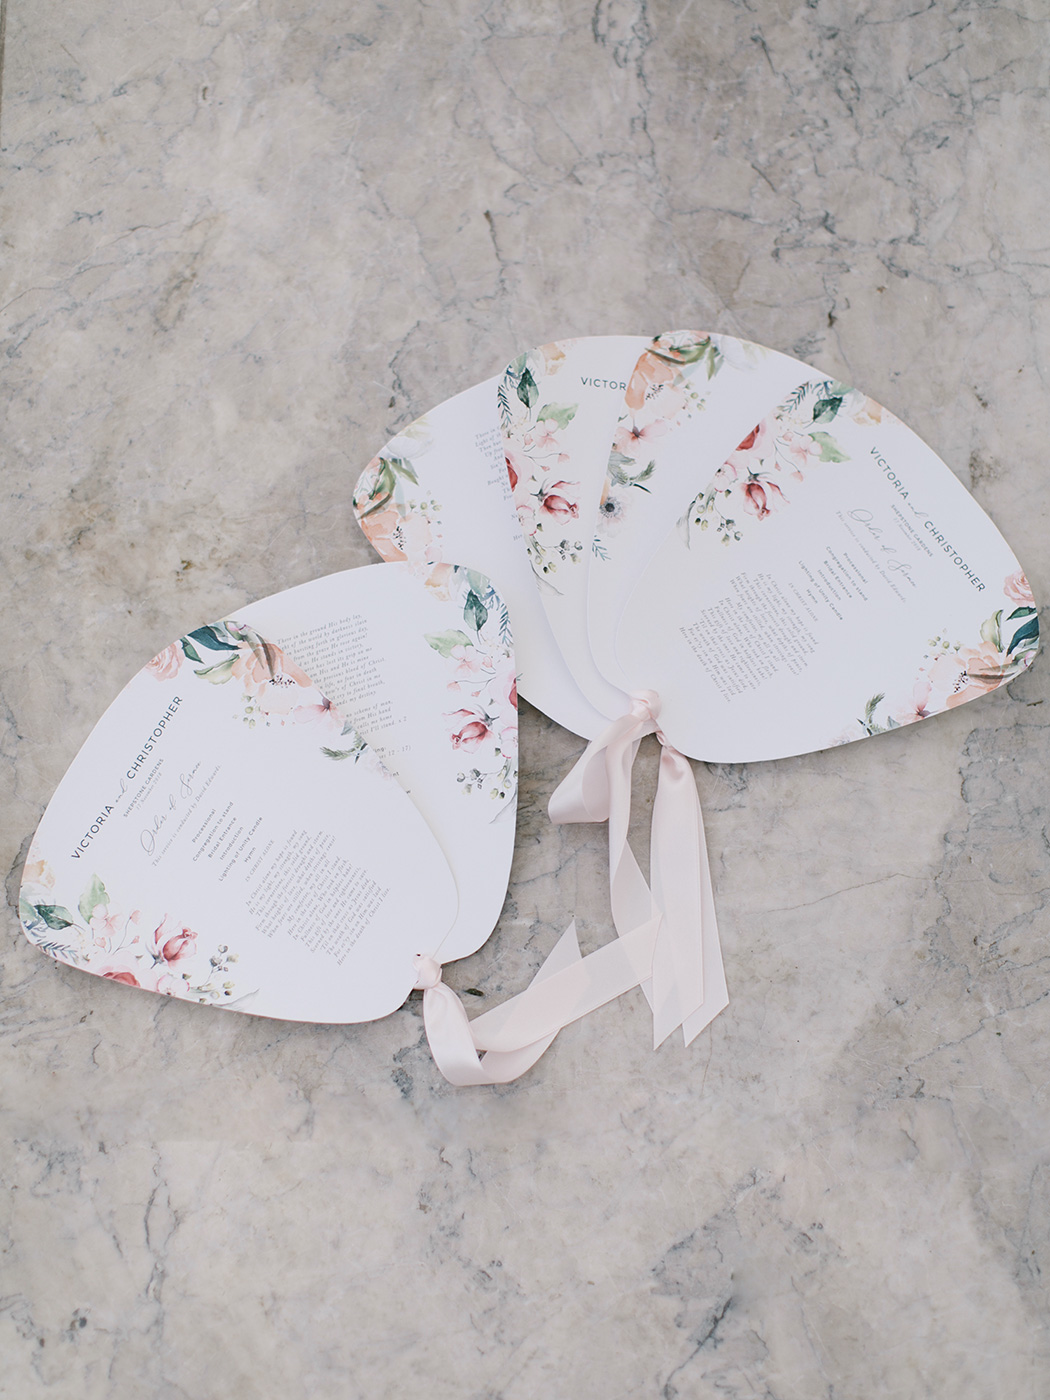 Wedding Stationery | Rensche Mari Photography